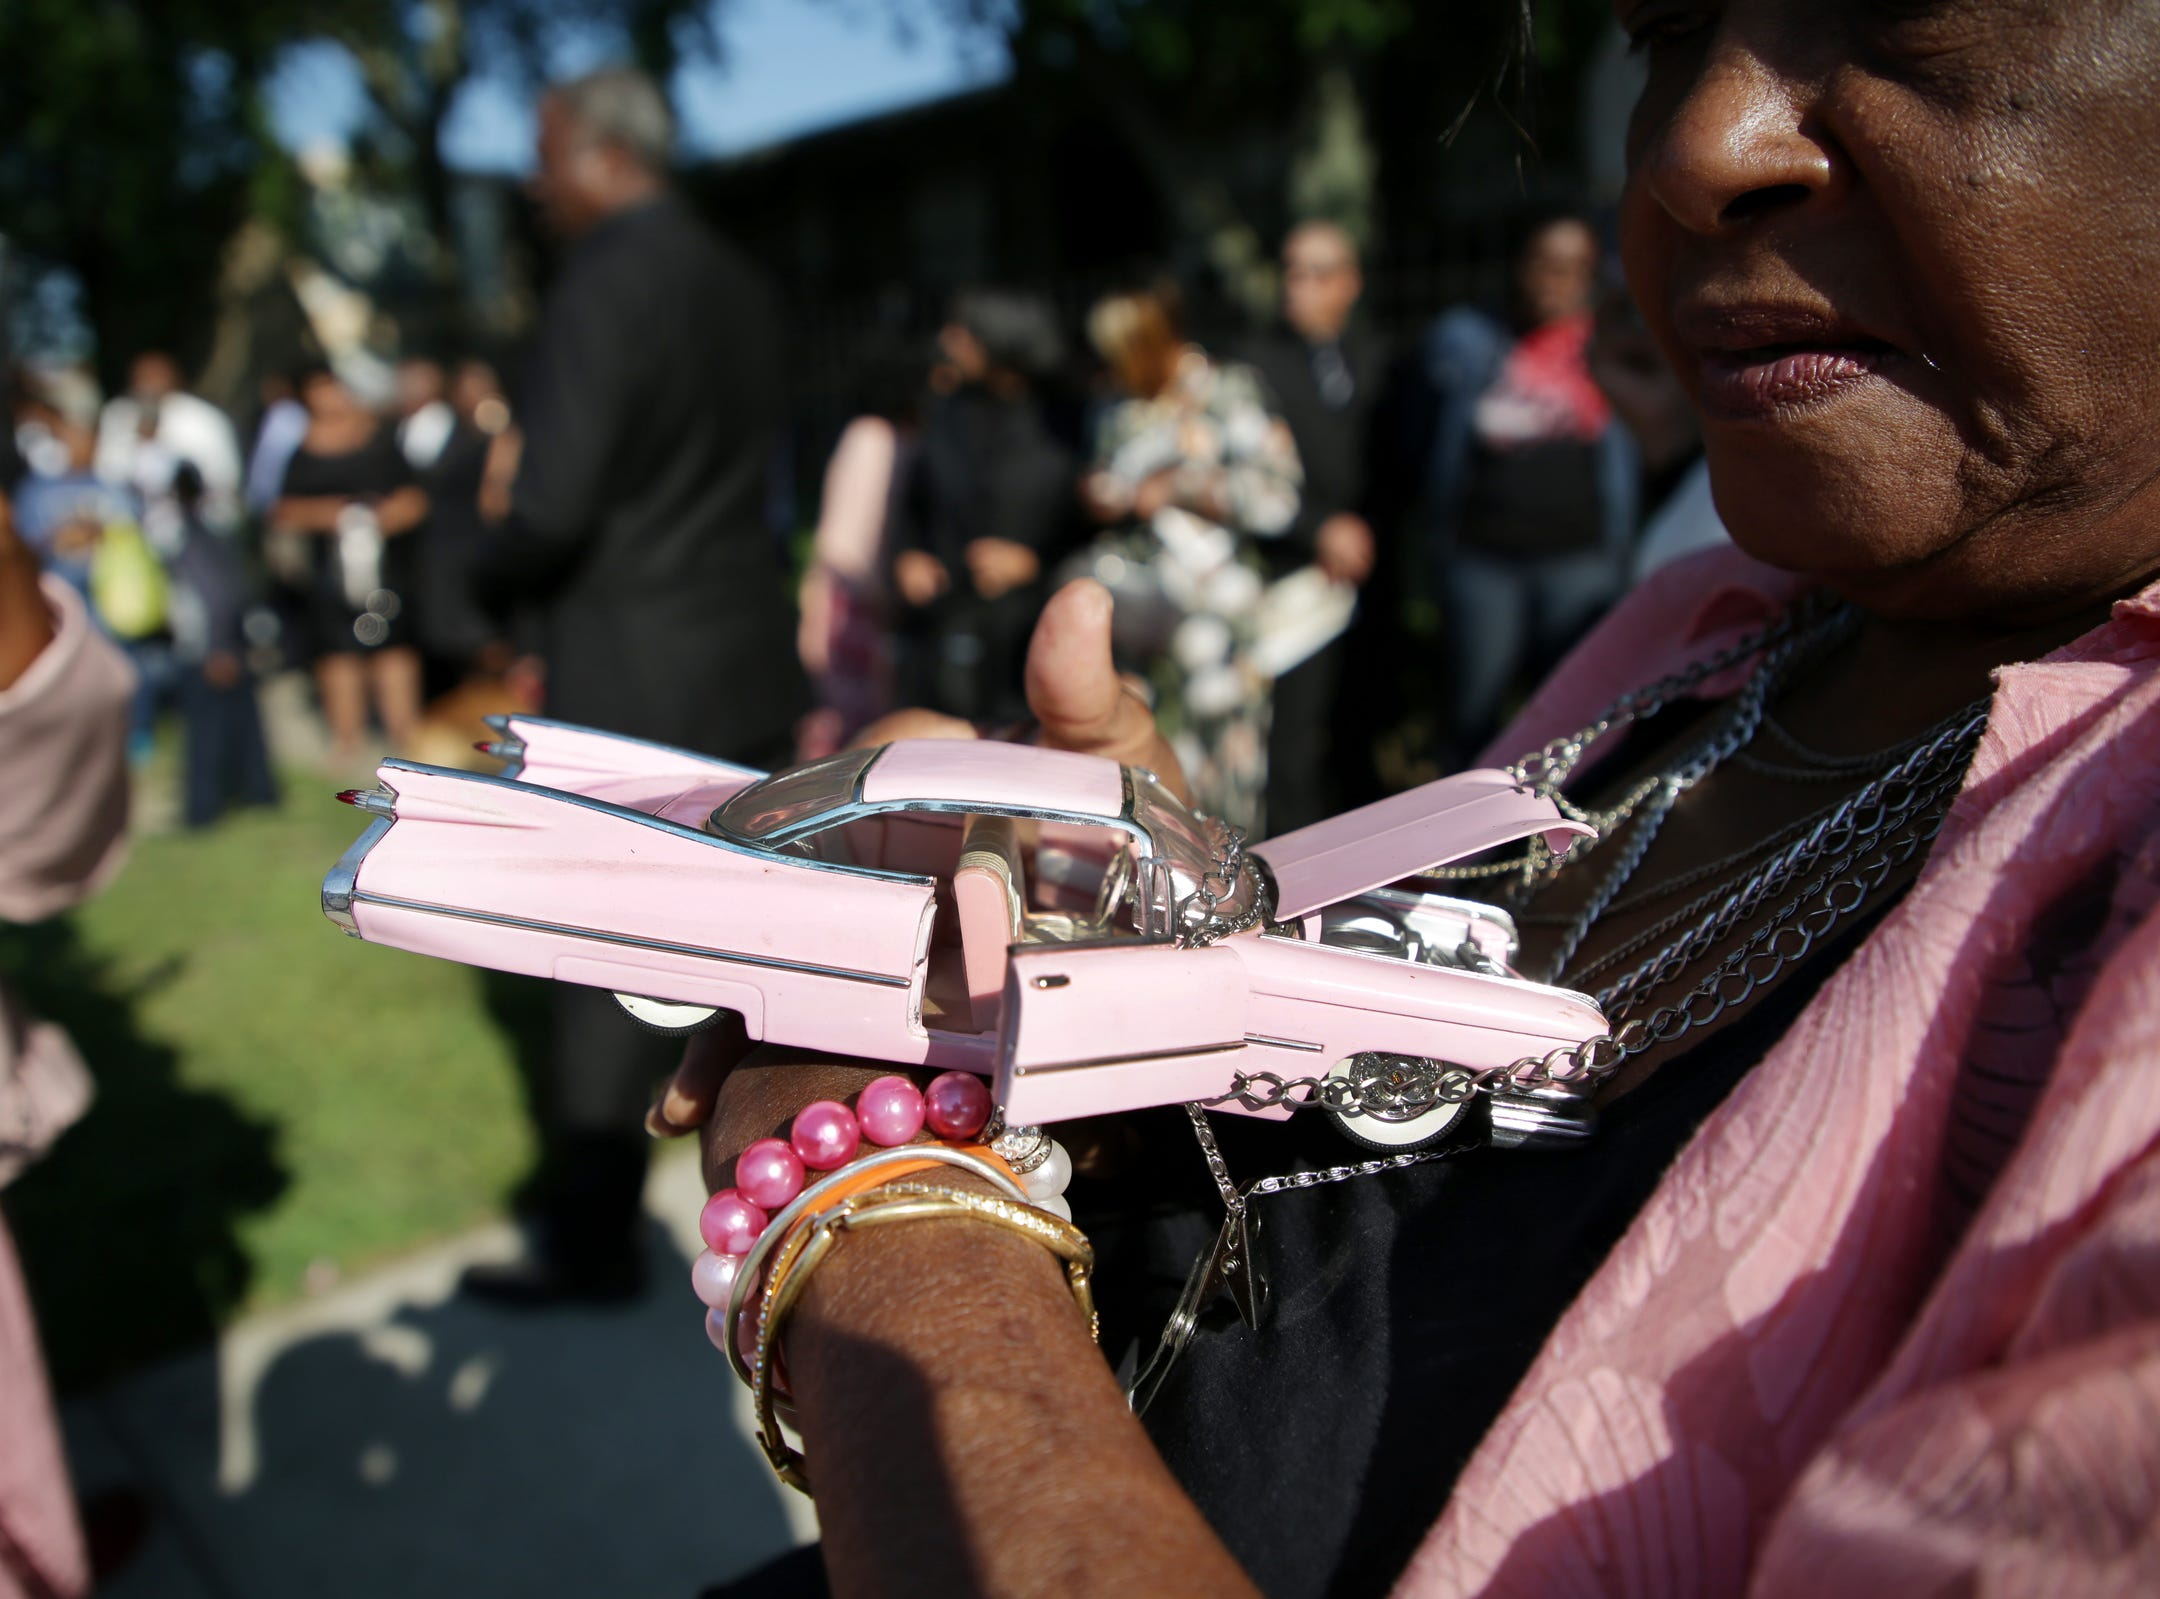 Leola Johnson of Detroit wears a 1959 pink Cadillac necklace as she waits in line for a chance to attend the funeral of Aretha Franklin at Greater Grace Temple on Friday, August 31, 2018.